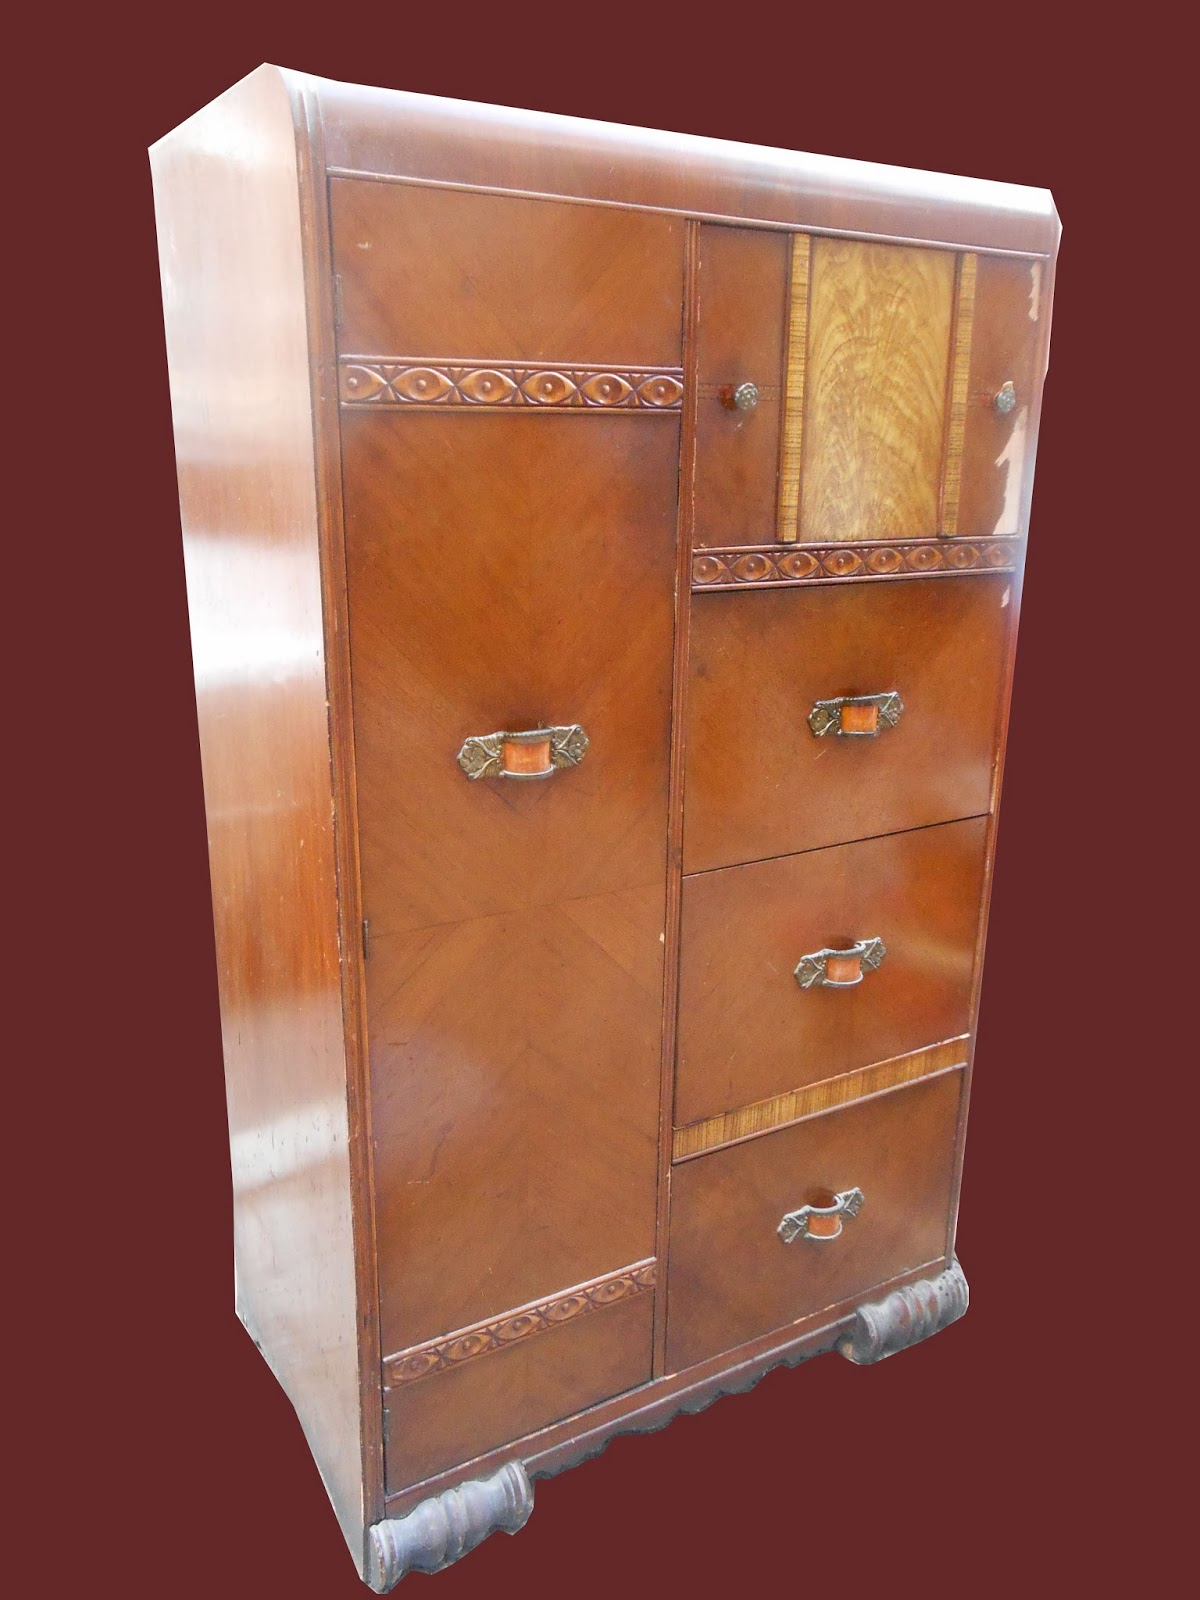 Skyscraper Art Deco Wardrobe With Burled Walnut Veneers Circa 1920 1930 Walnut Veneer